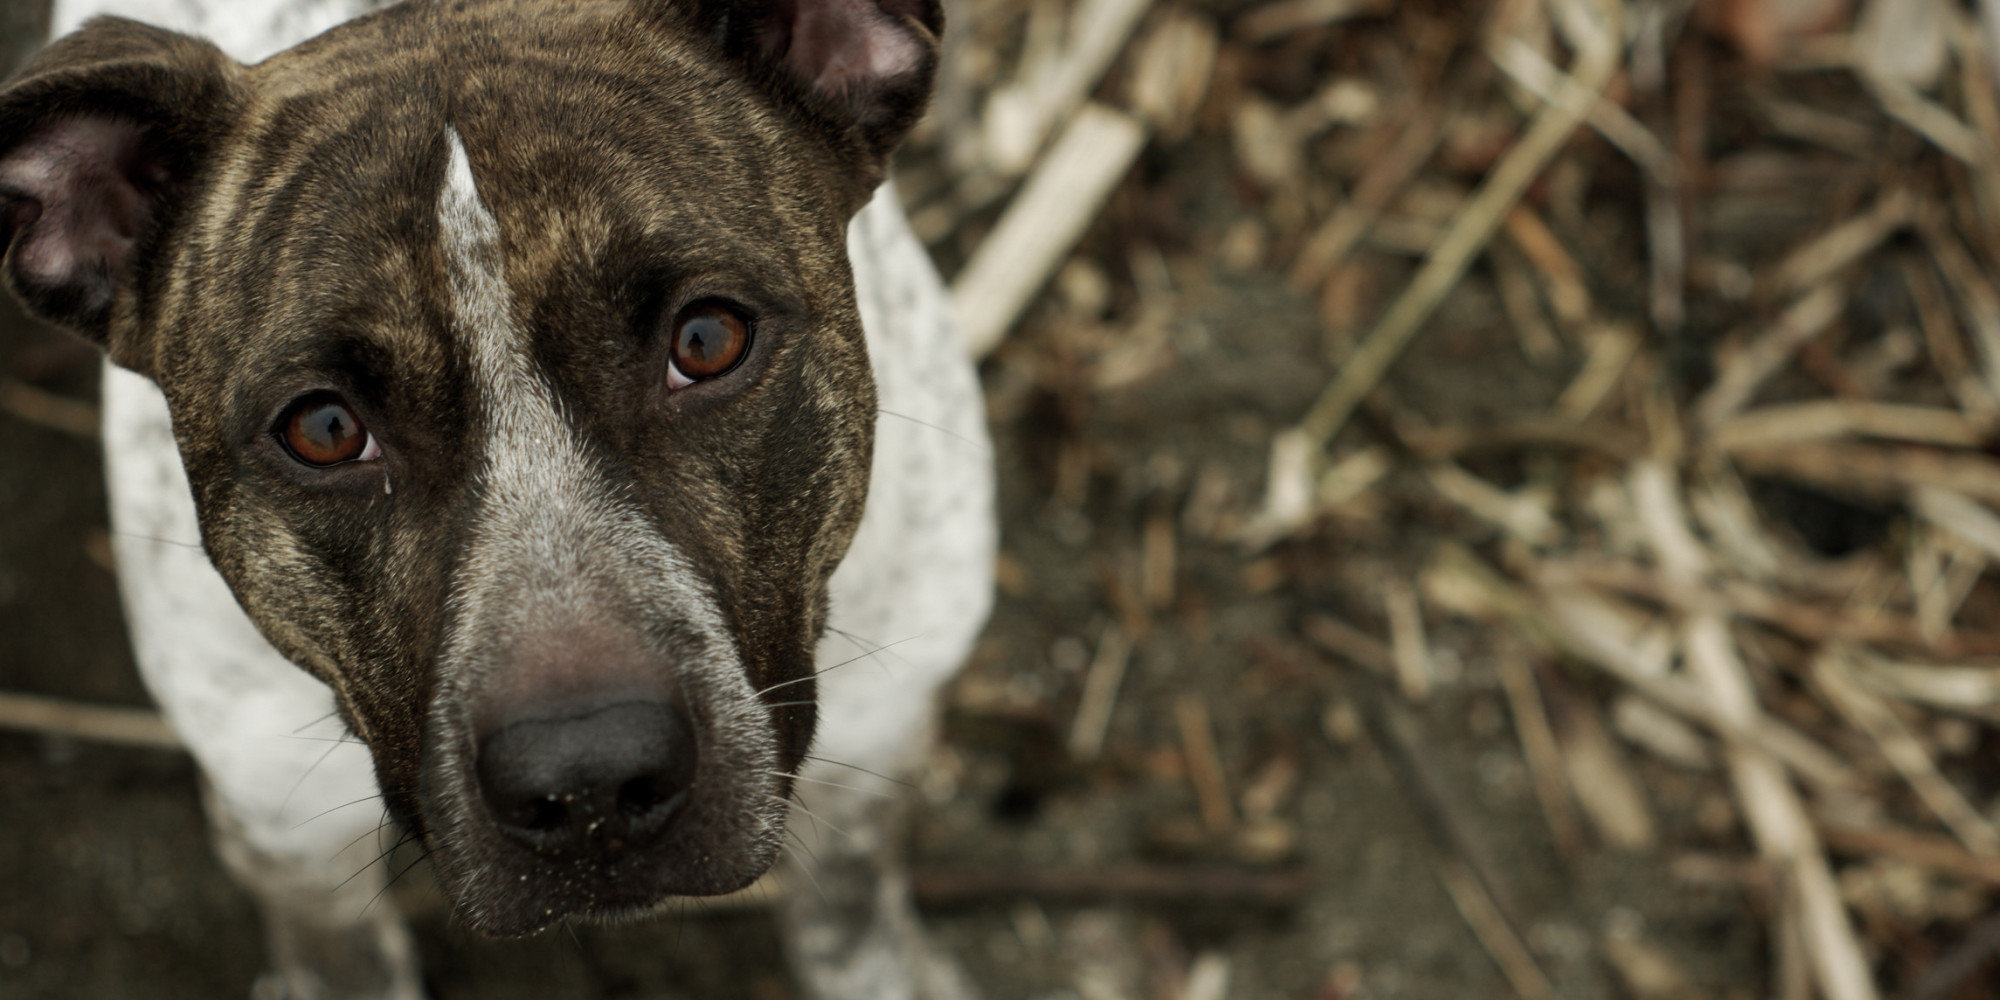 So you think you know what a pit bull is think again huffpost nvjuhfo Choice Image